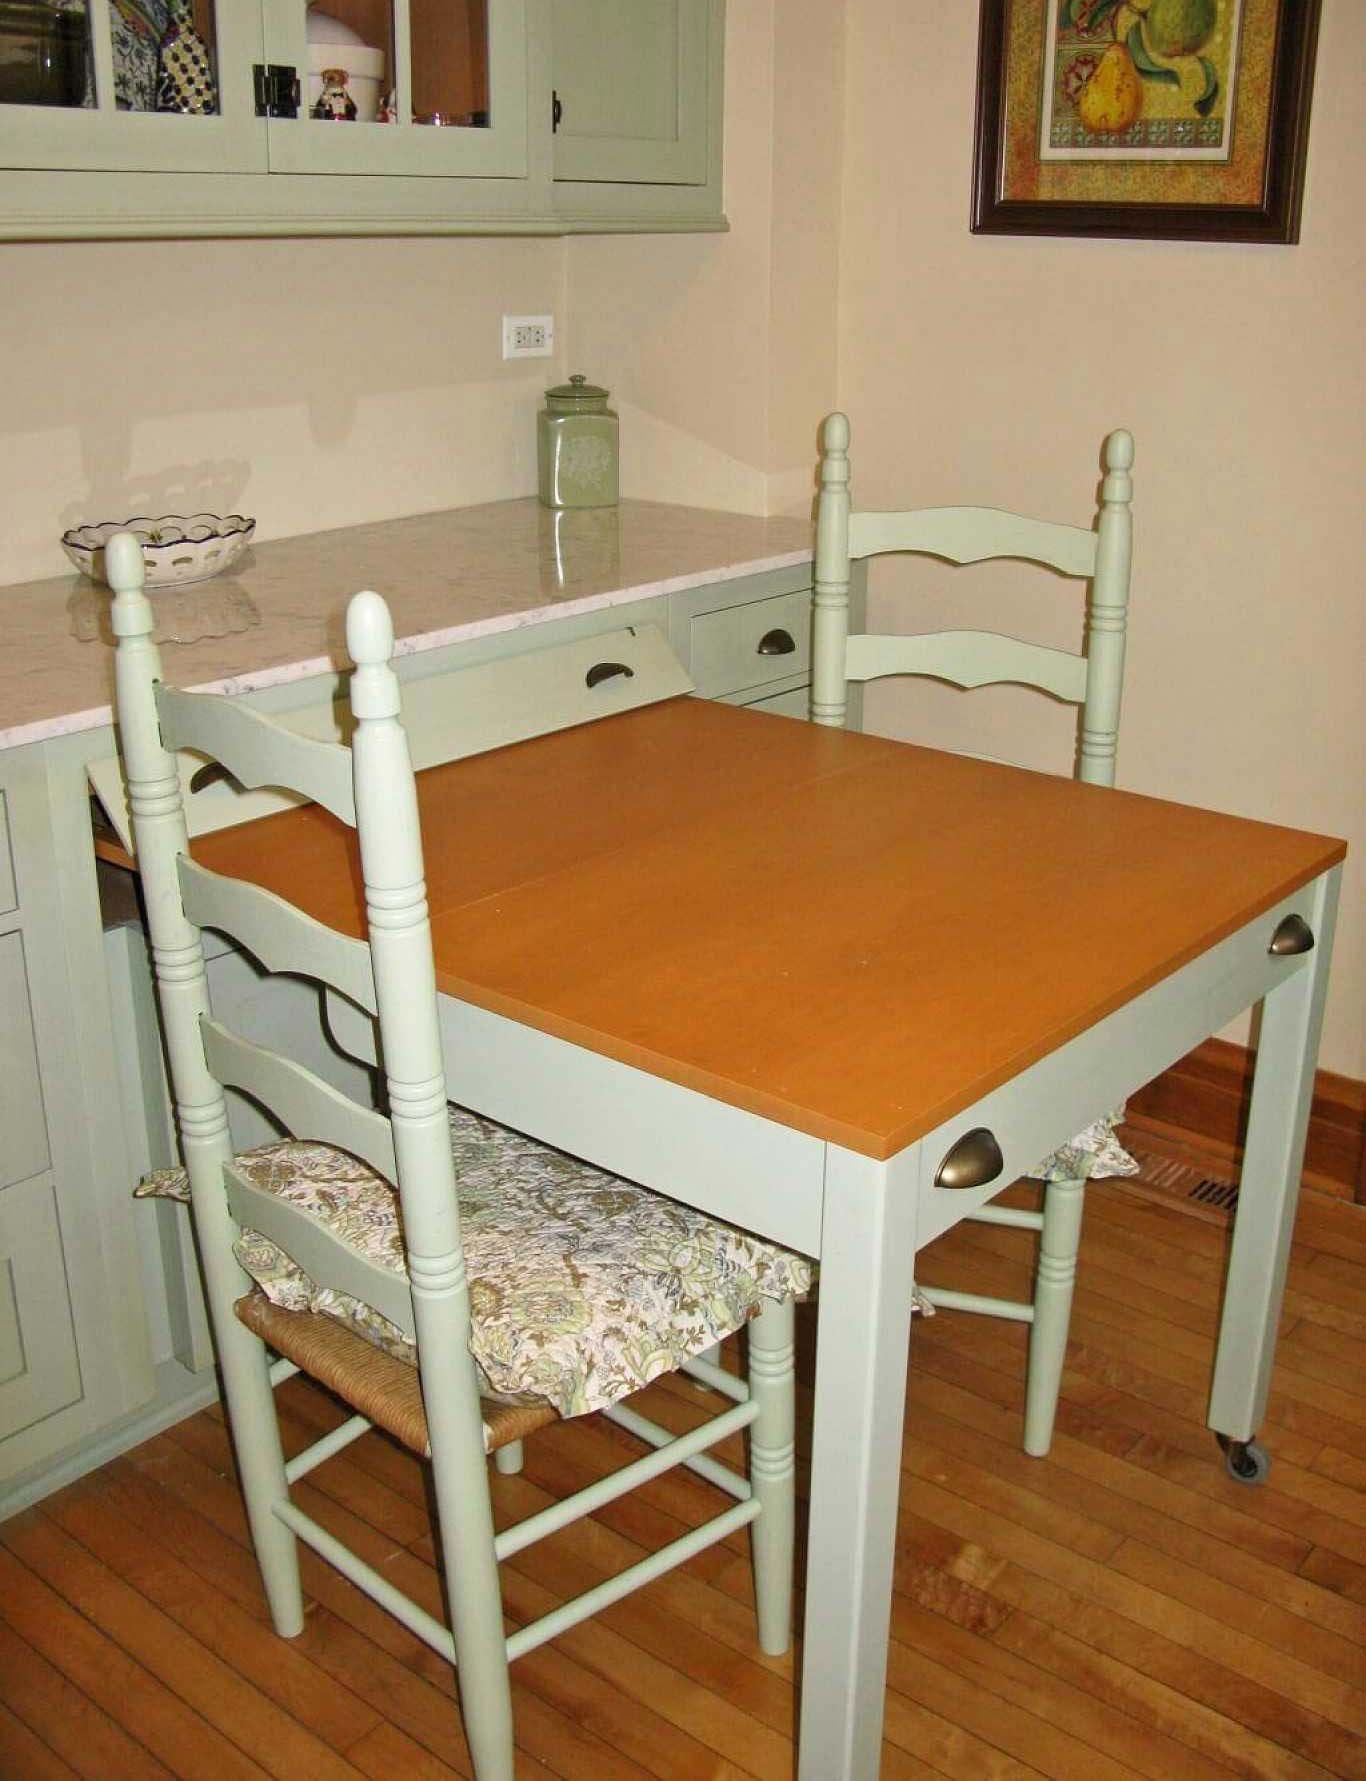 Slide-Out Table